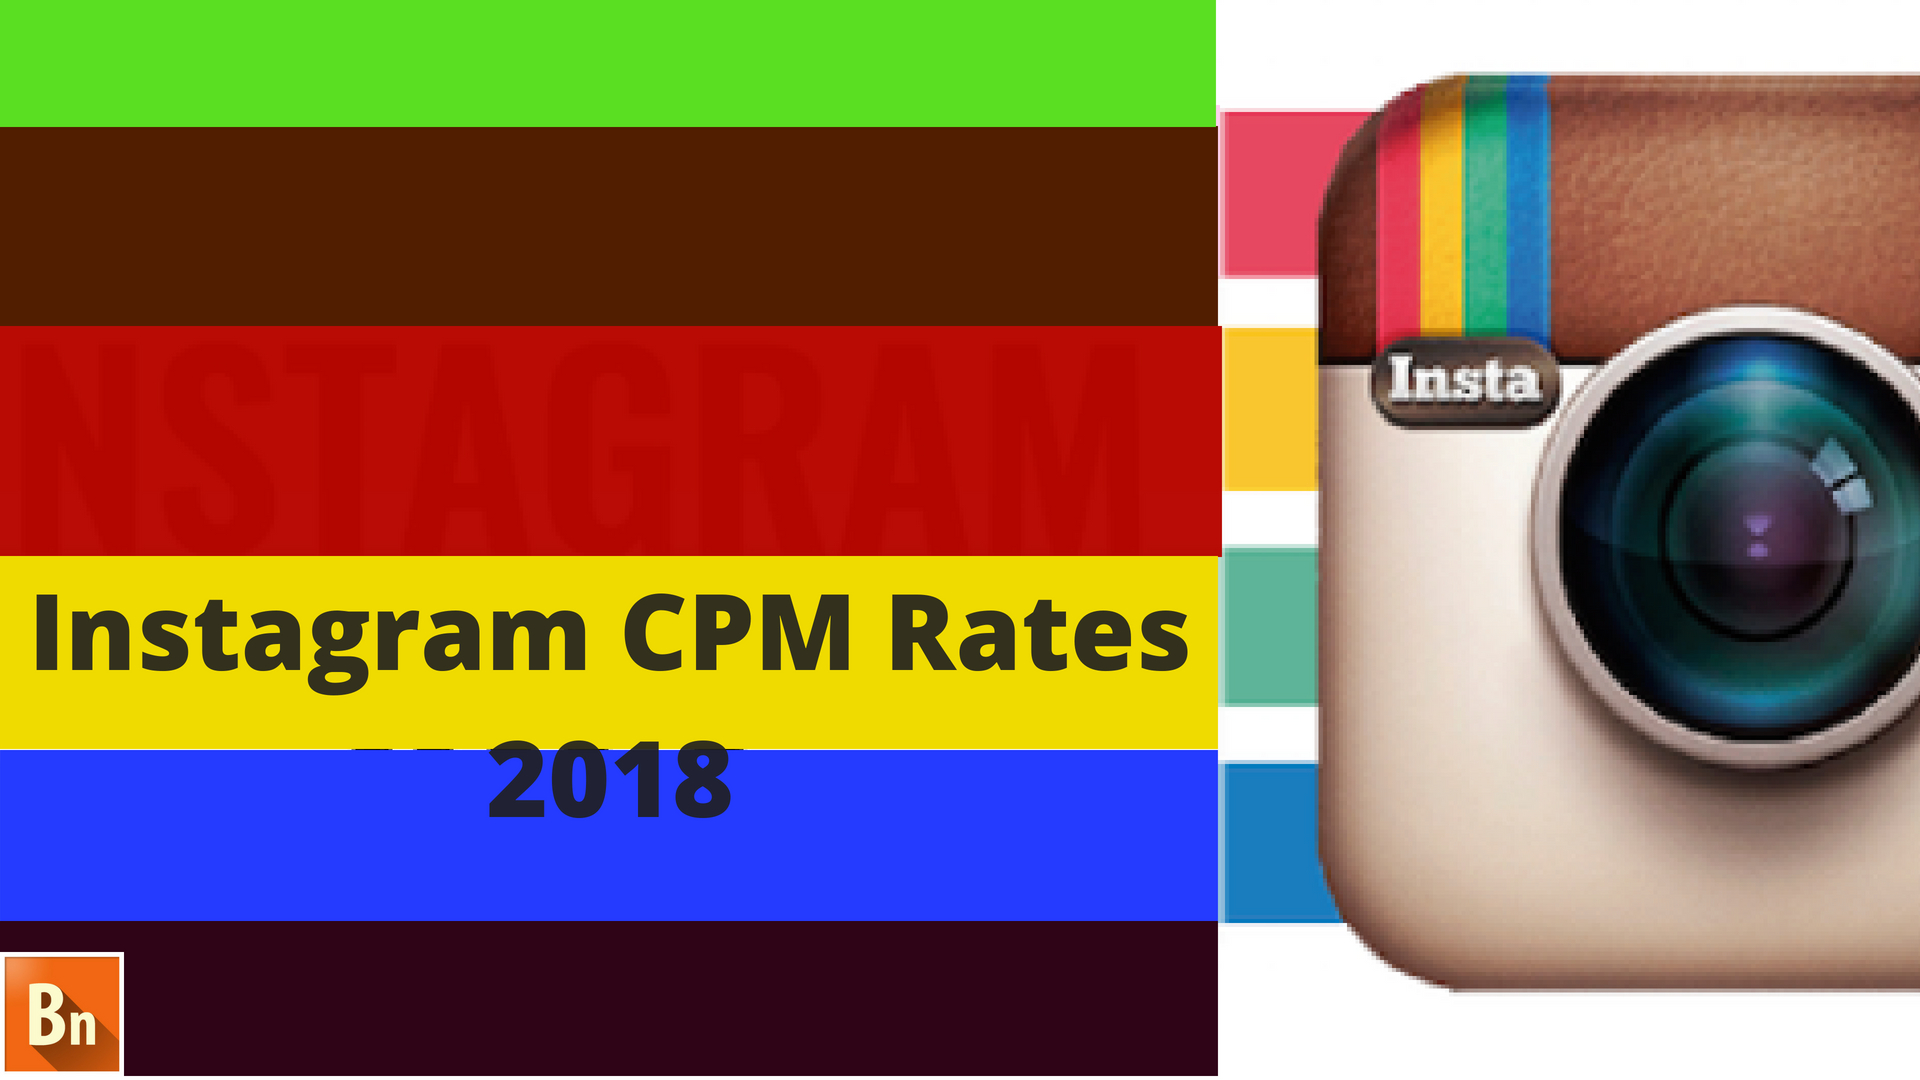 Instagram CPM Rates 2019